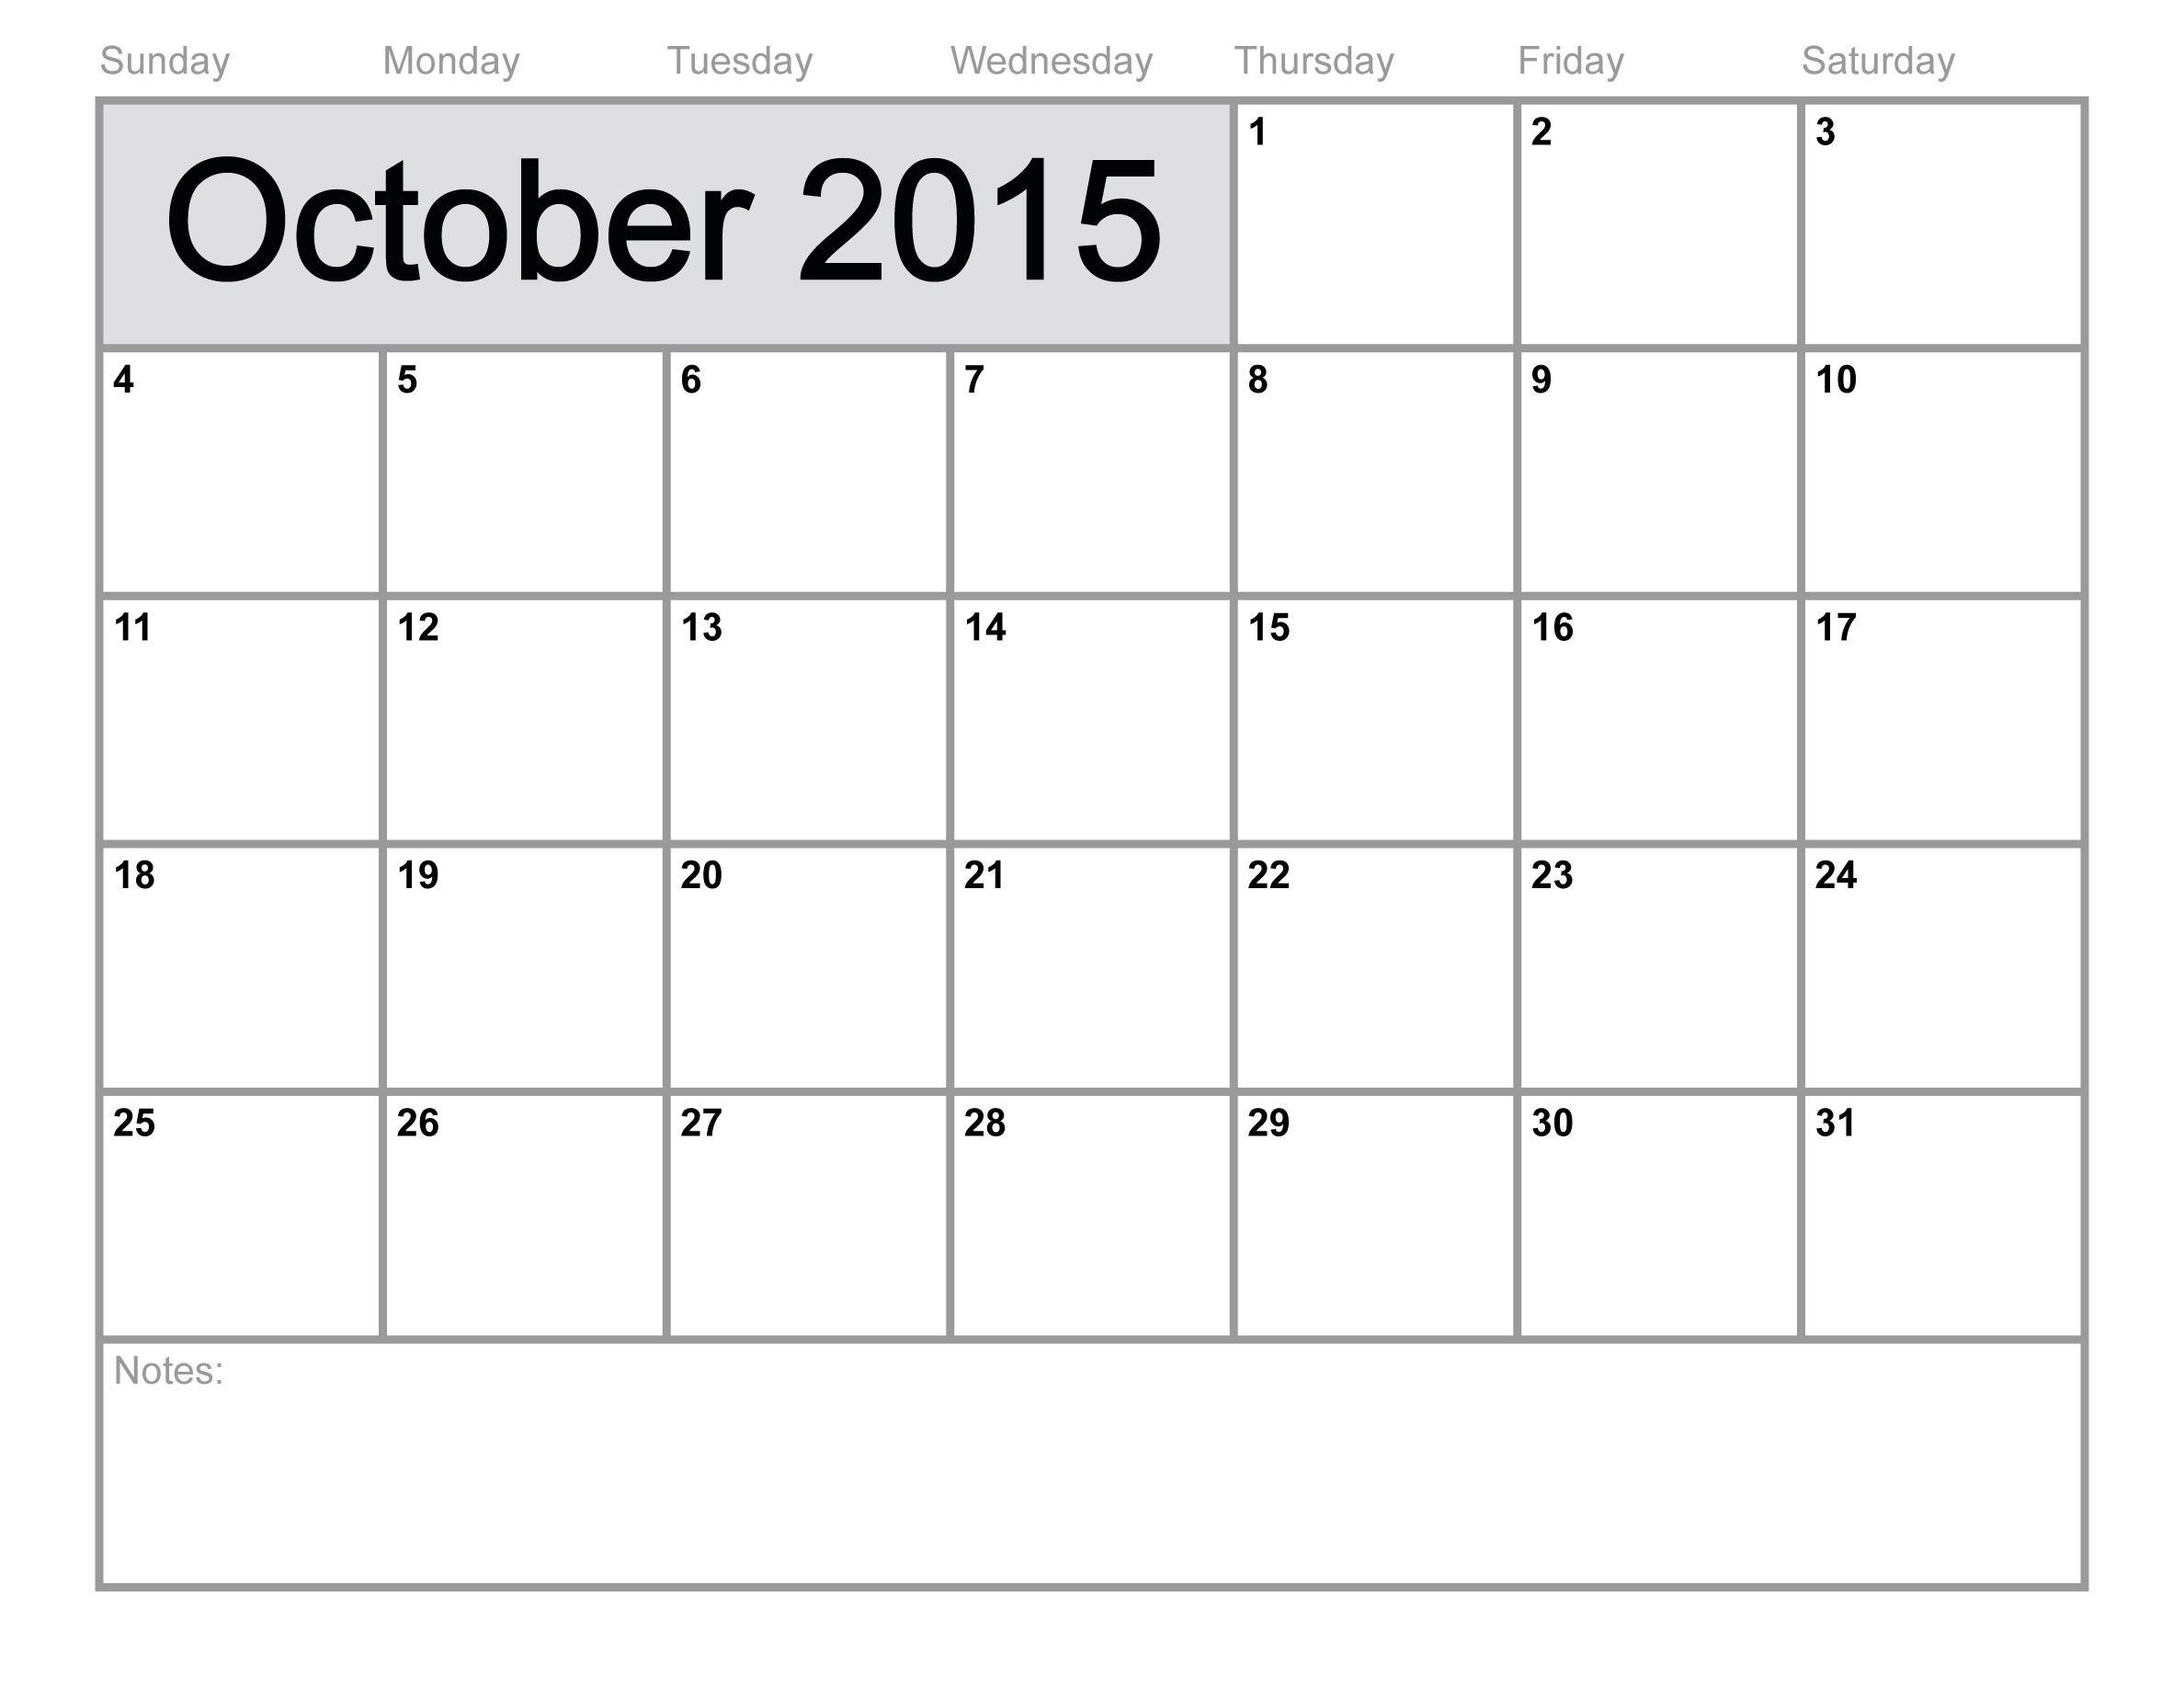 october 2015 calendar philippines  tumblr  pictures  images  templates  holidays  events  usa